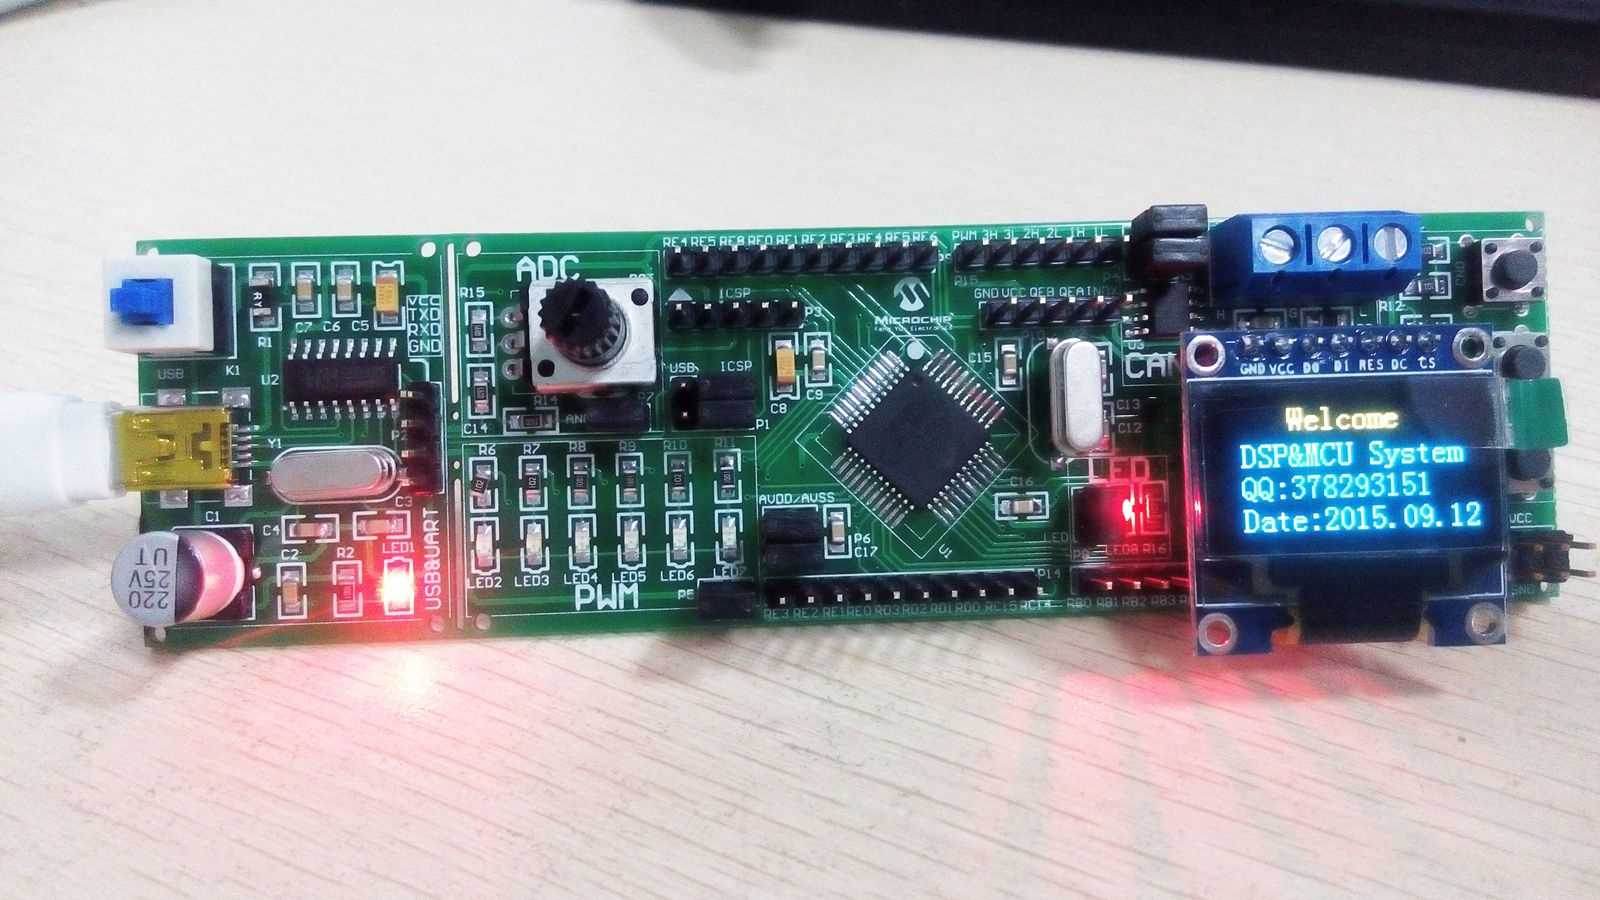 DsPIC development board dsPIC experimental board DSP system board dsPIC30F4011 development board w5500 development board the ethernet module ethernet development board